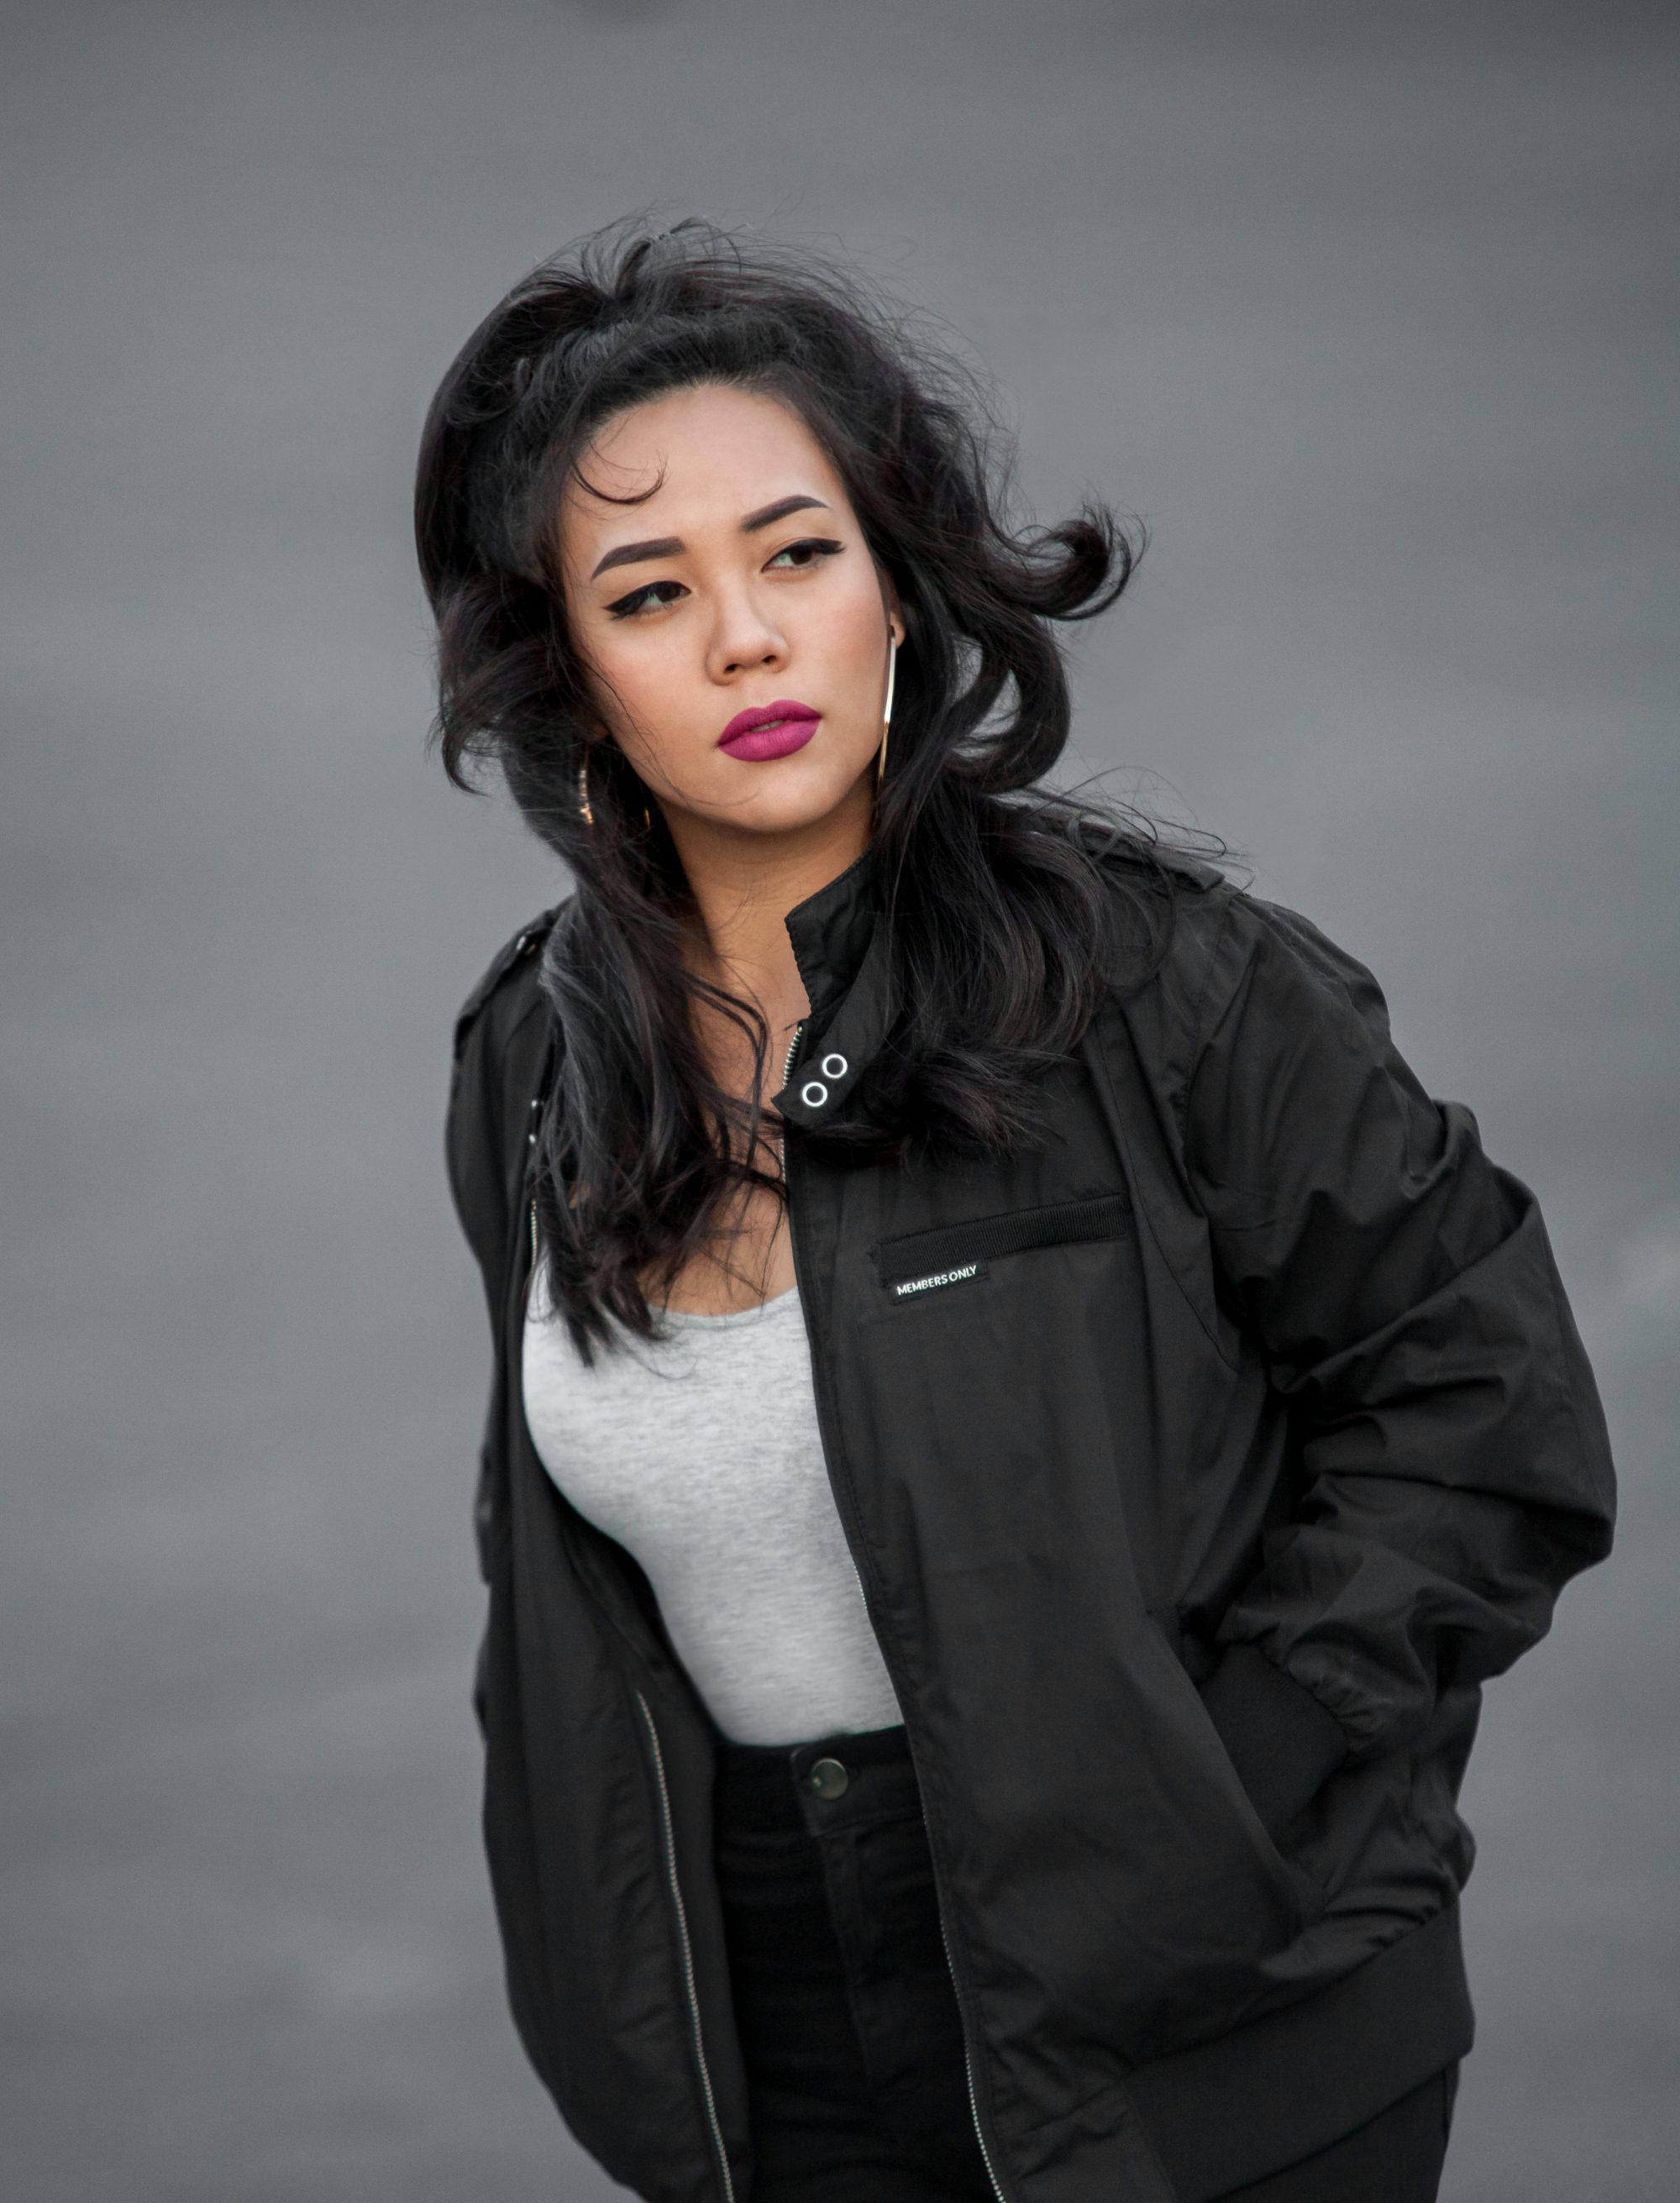 """Bomber jackets are the epitome of masculine athleticism. Perfect for casual outfits, a bomber jacket looks great when paired with a T-shirt or tank top and figure-flattering distressed jeans. Get it oversized for an """"I-stole-this-from-a-man"""" look. - www.theballeronabudget.com"""